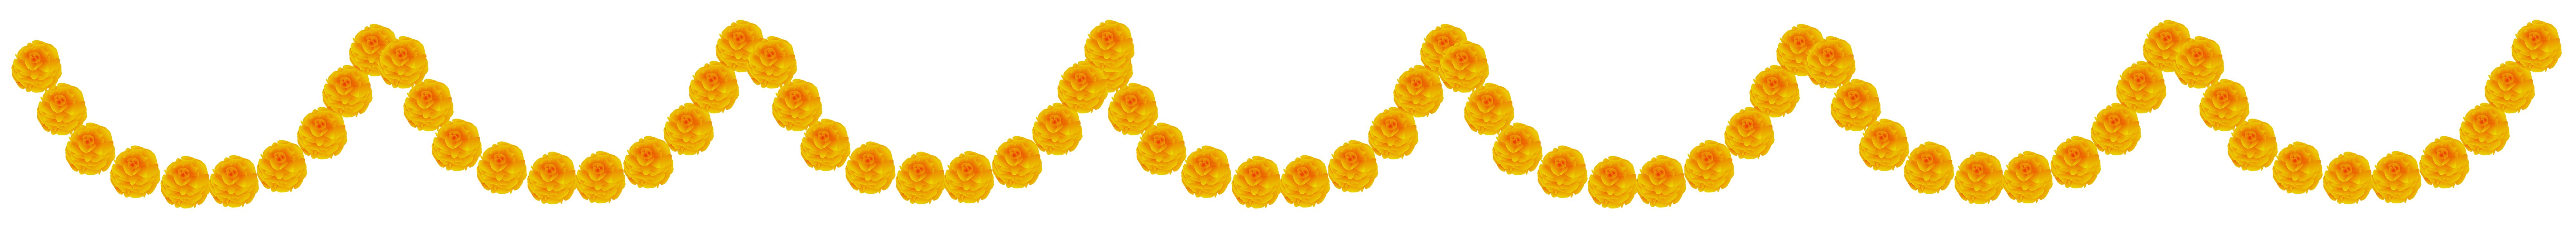 Flower Garland Transparent Png Clip Art Image Gallery Yopriceville High Quality Images And Transparent Png Free Clipar Art Images Clip Art Flower Garlands